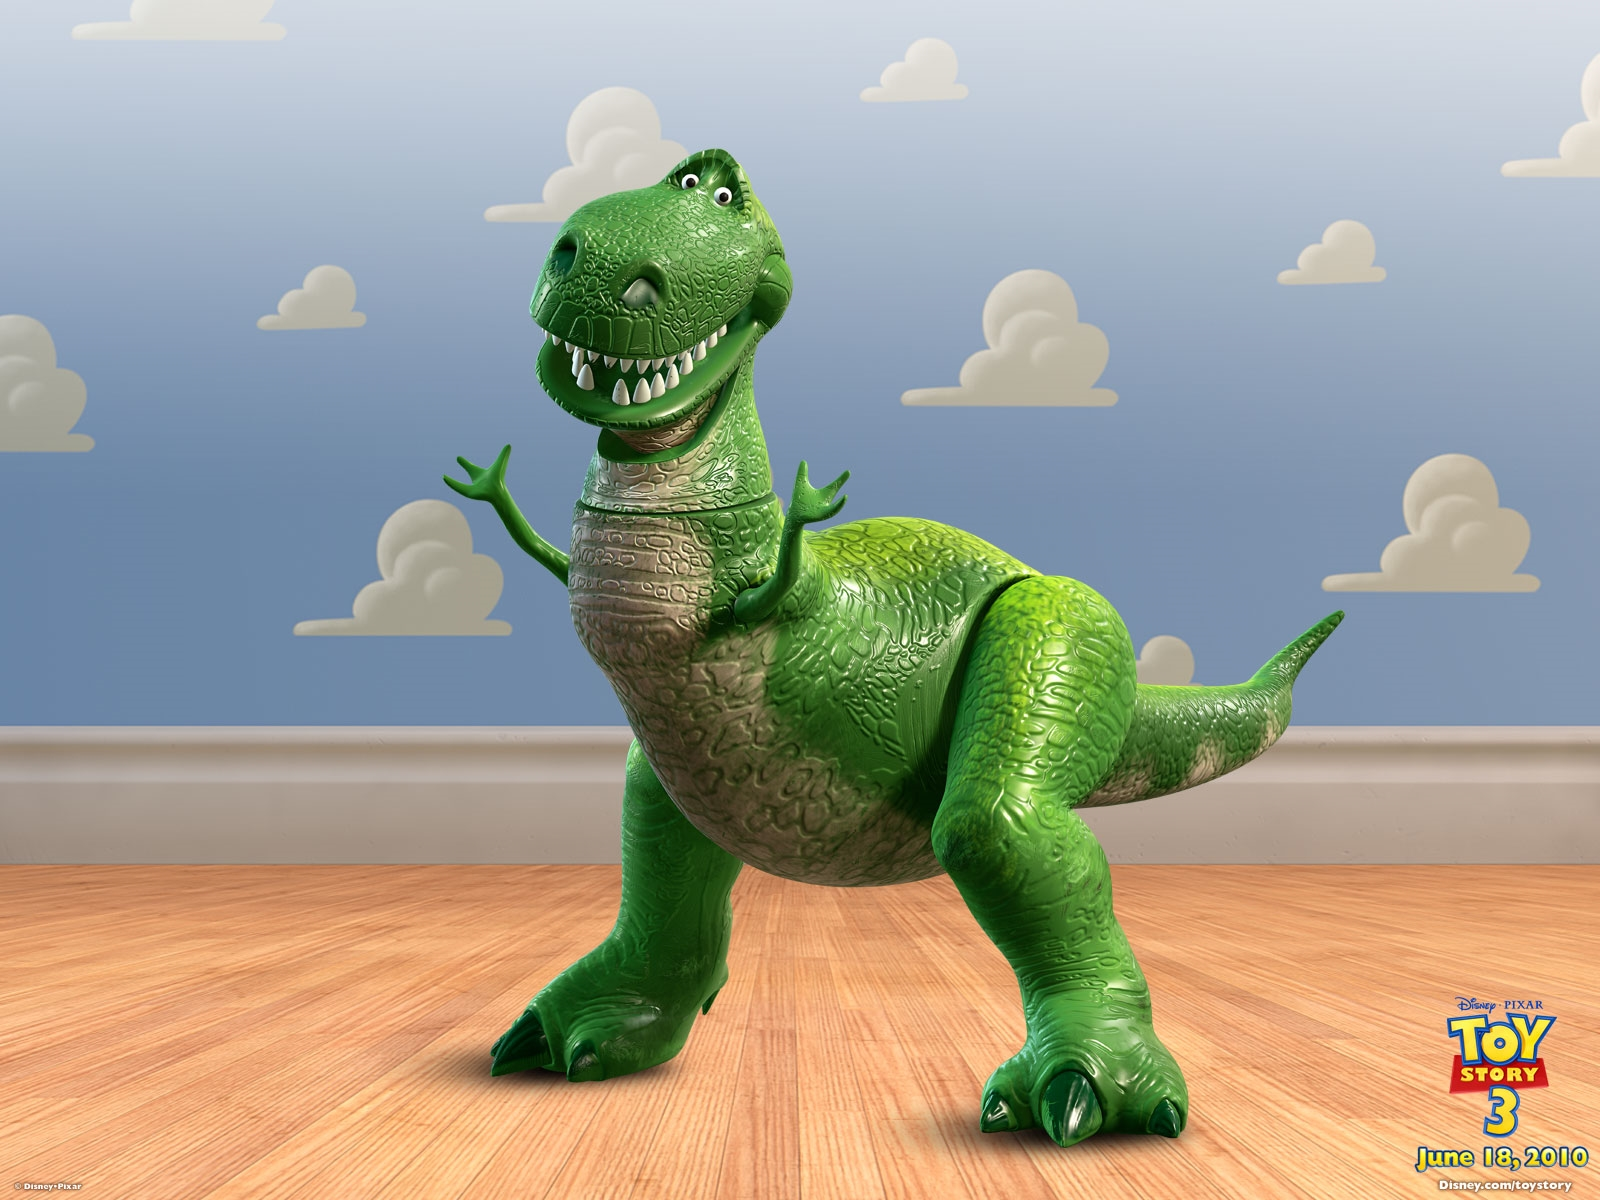 toystory 1 2 3 dino hd free wallpaper desktop background